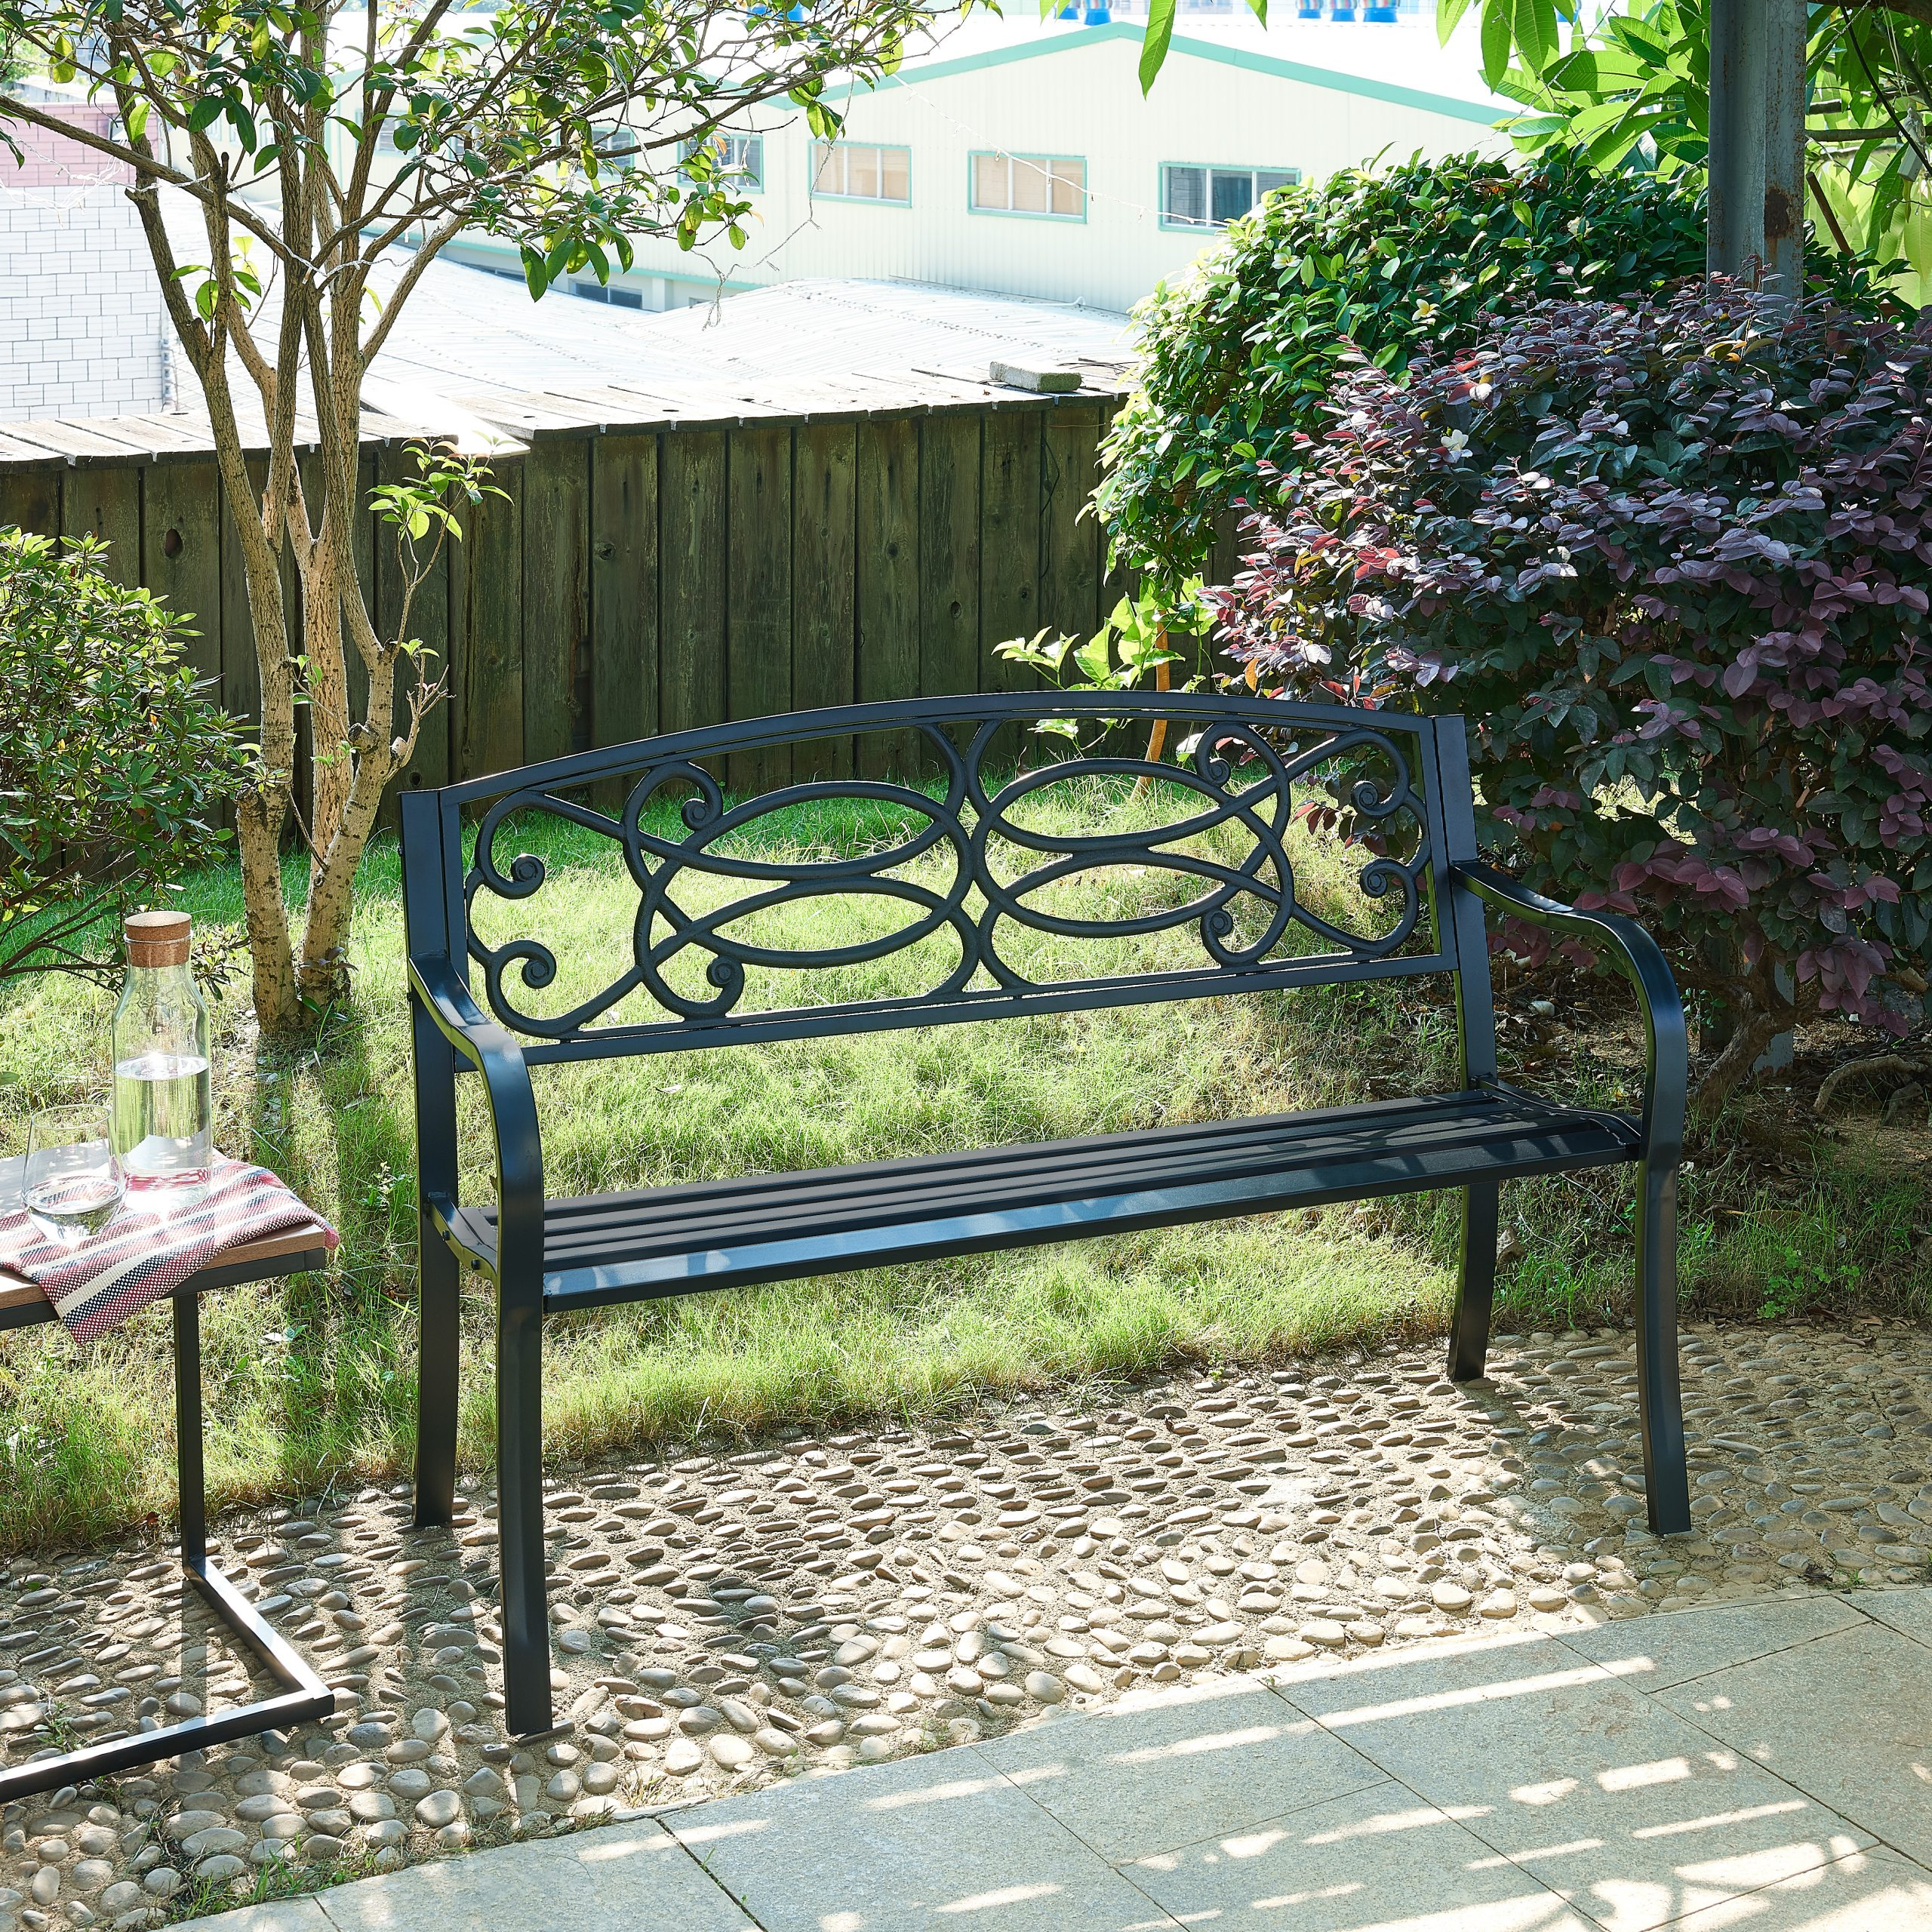 Fashionable Flamingo Metal Garden Benches Throughout Details About Outdoor Cast Iron/metal Garden Bench Seat Patio Furniture Scroll Design Park (View 29 of 30)